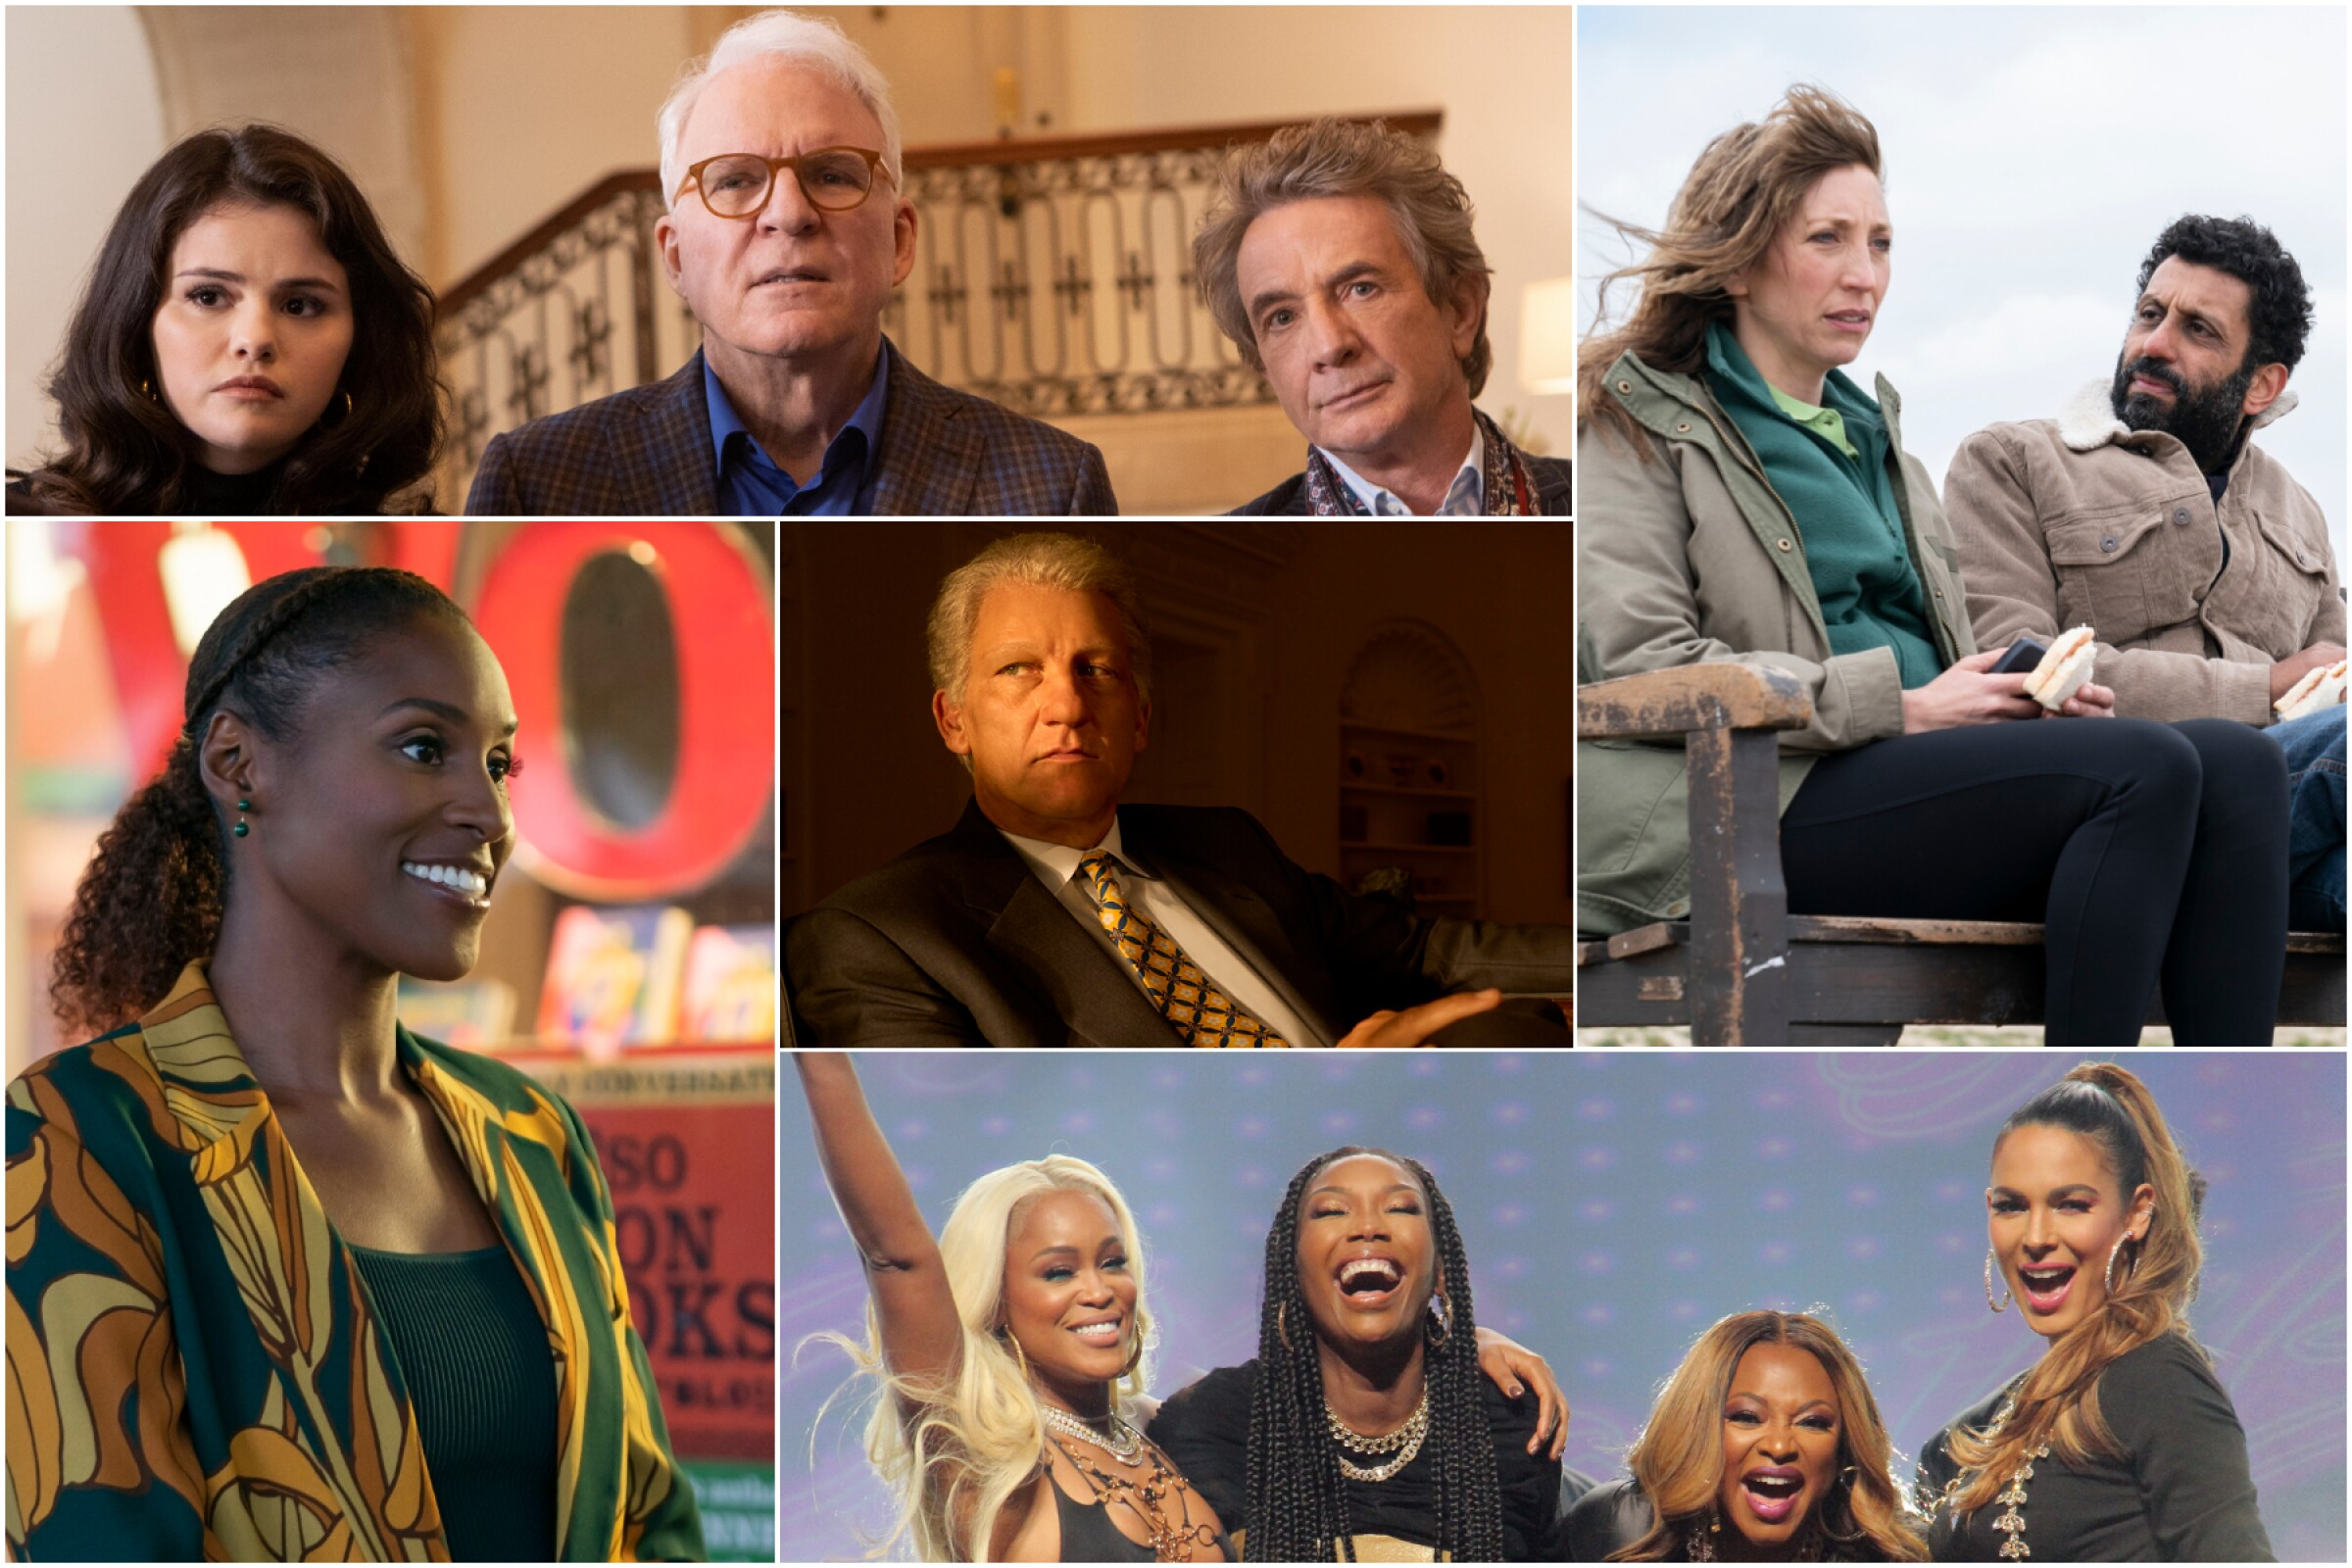 The 15 TV shows we're most excited to watch this fall